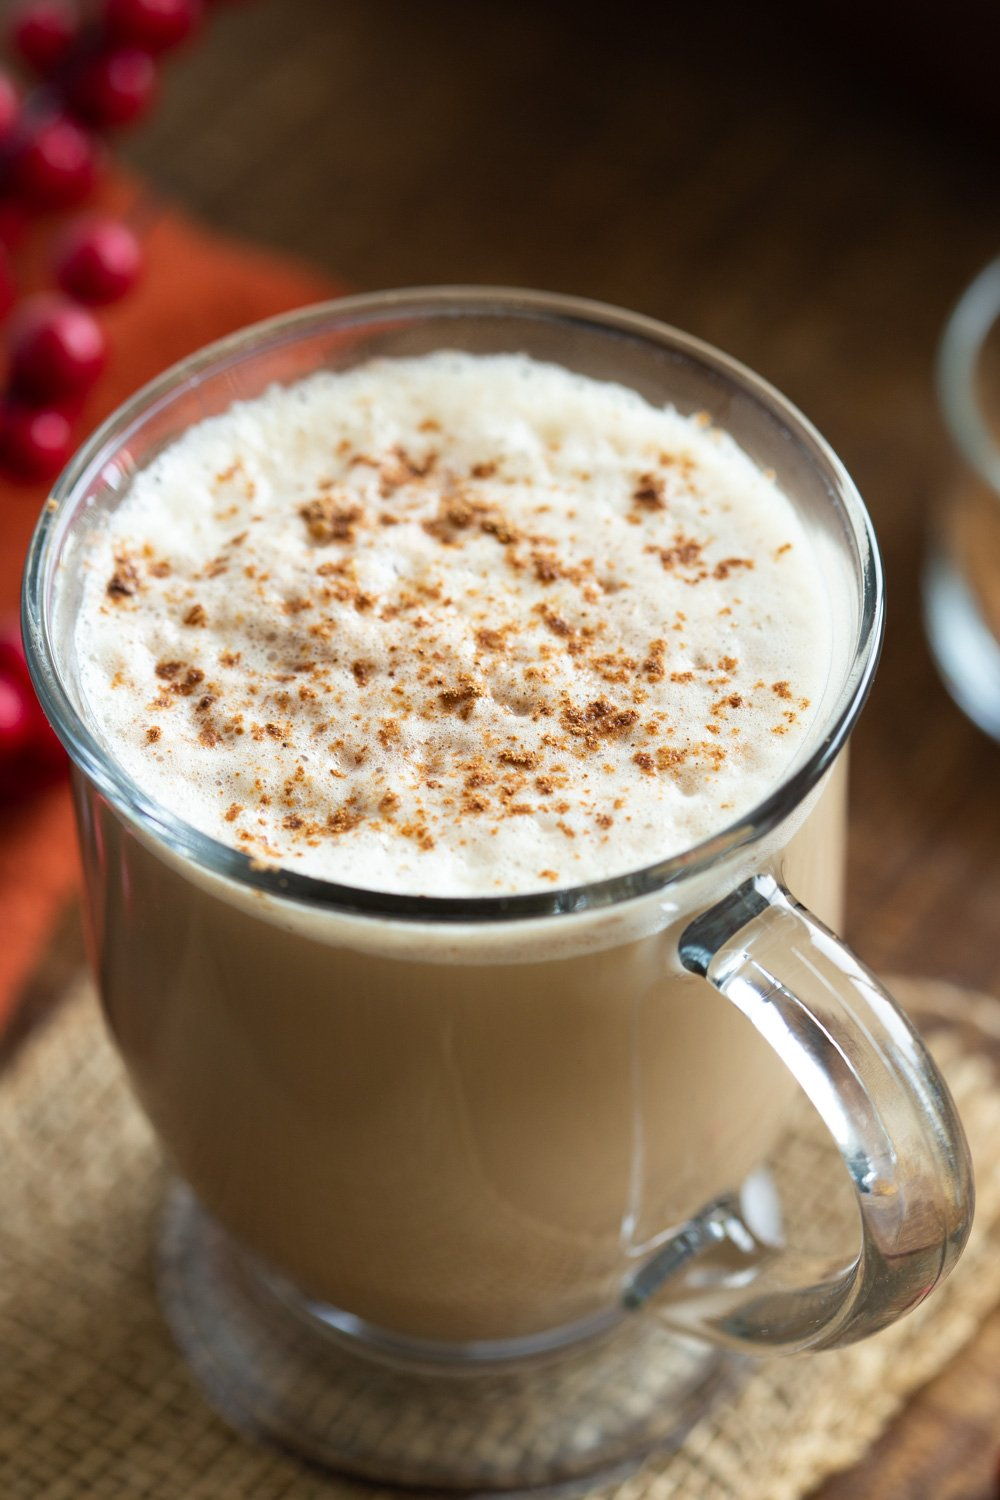 Creamy Warming Vegan Gingerbread Latte. This vegan version of the Starbucks gingerbread latte has fresh ginger, homemade gingerbread spice and amazing flavor. 5 Ingredients! Can be made caffeine-free. Vegan Glutenfree Recipe